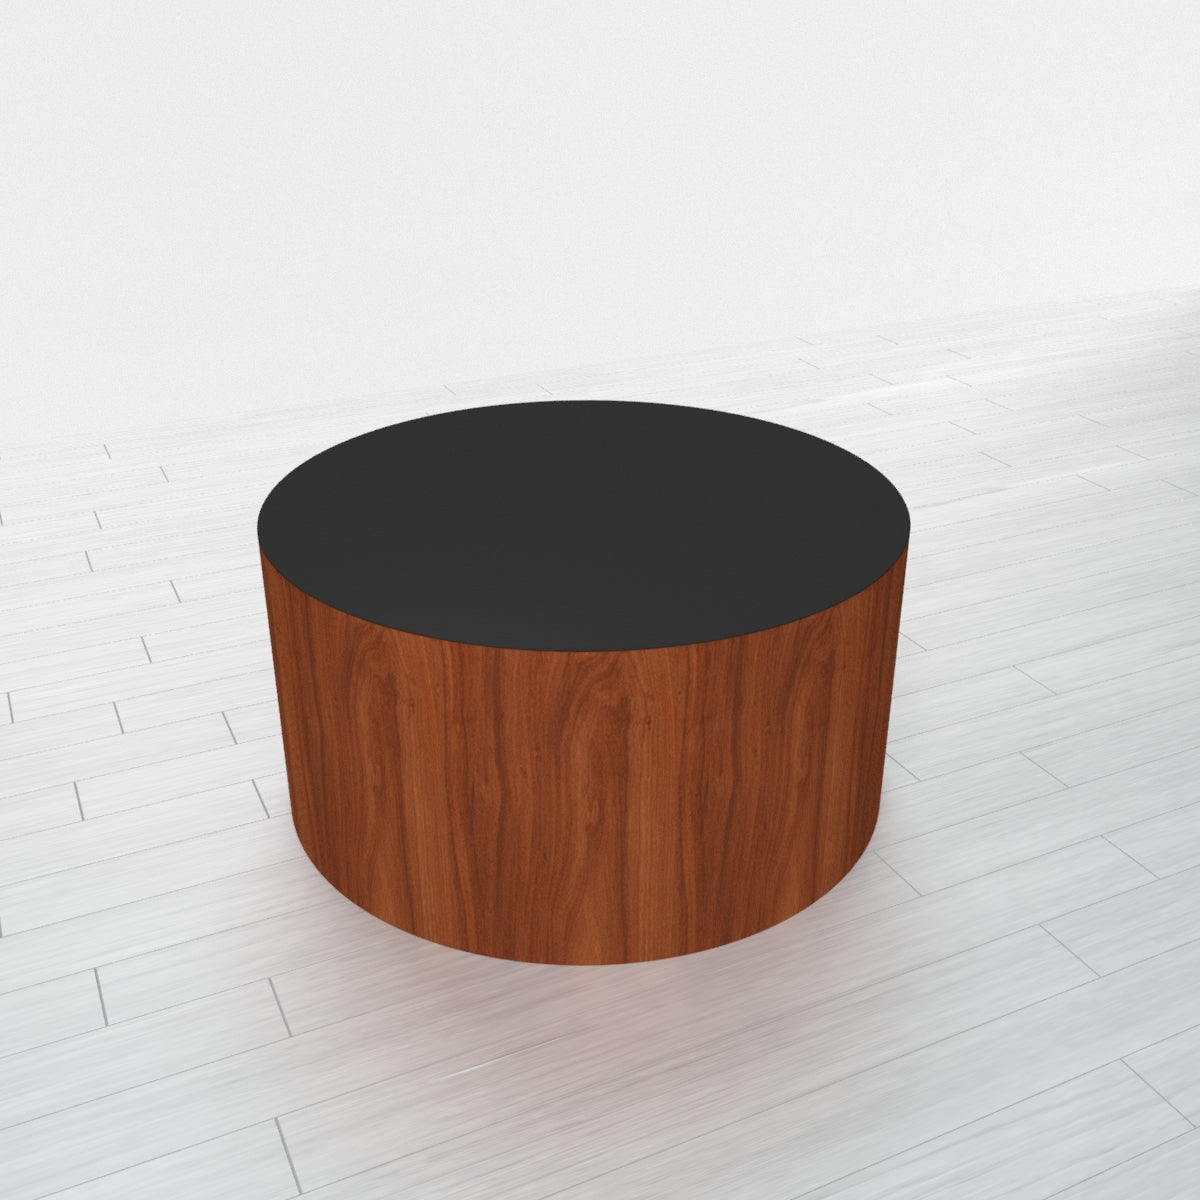 CYLINDRICAL - Cherry Heartwood Base + Black Top - 23x23